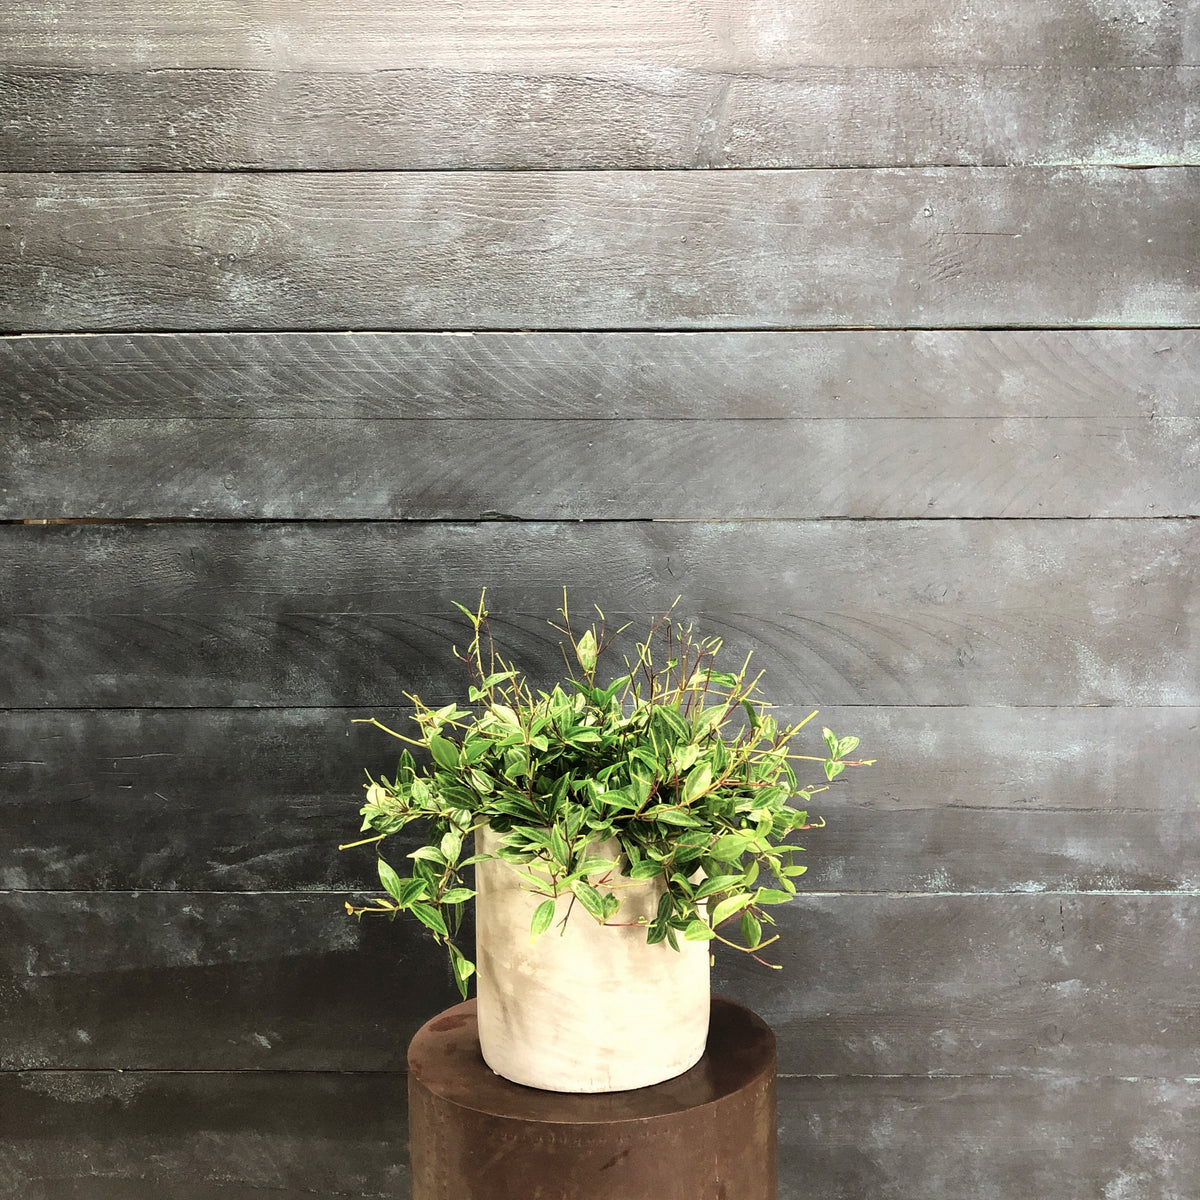 Concrete cyclinder with peperomia